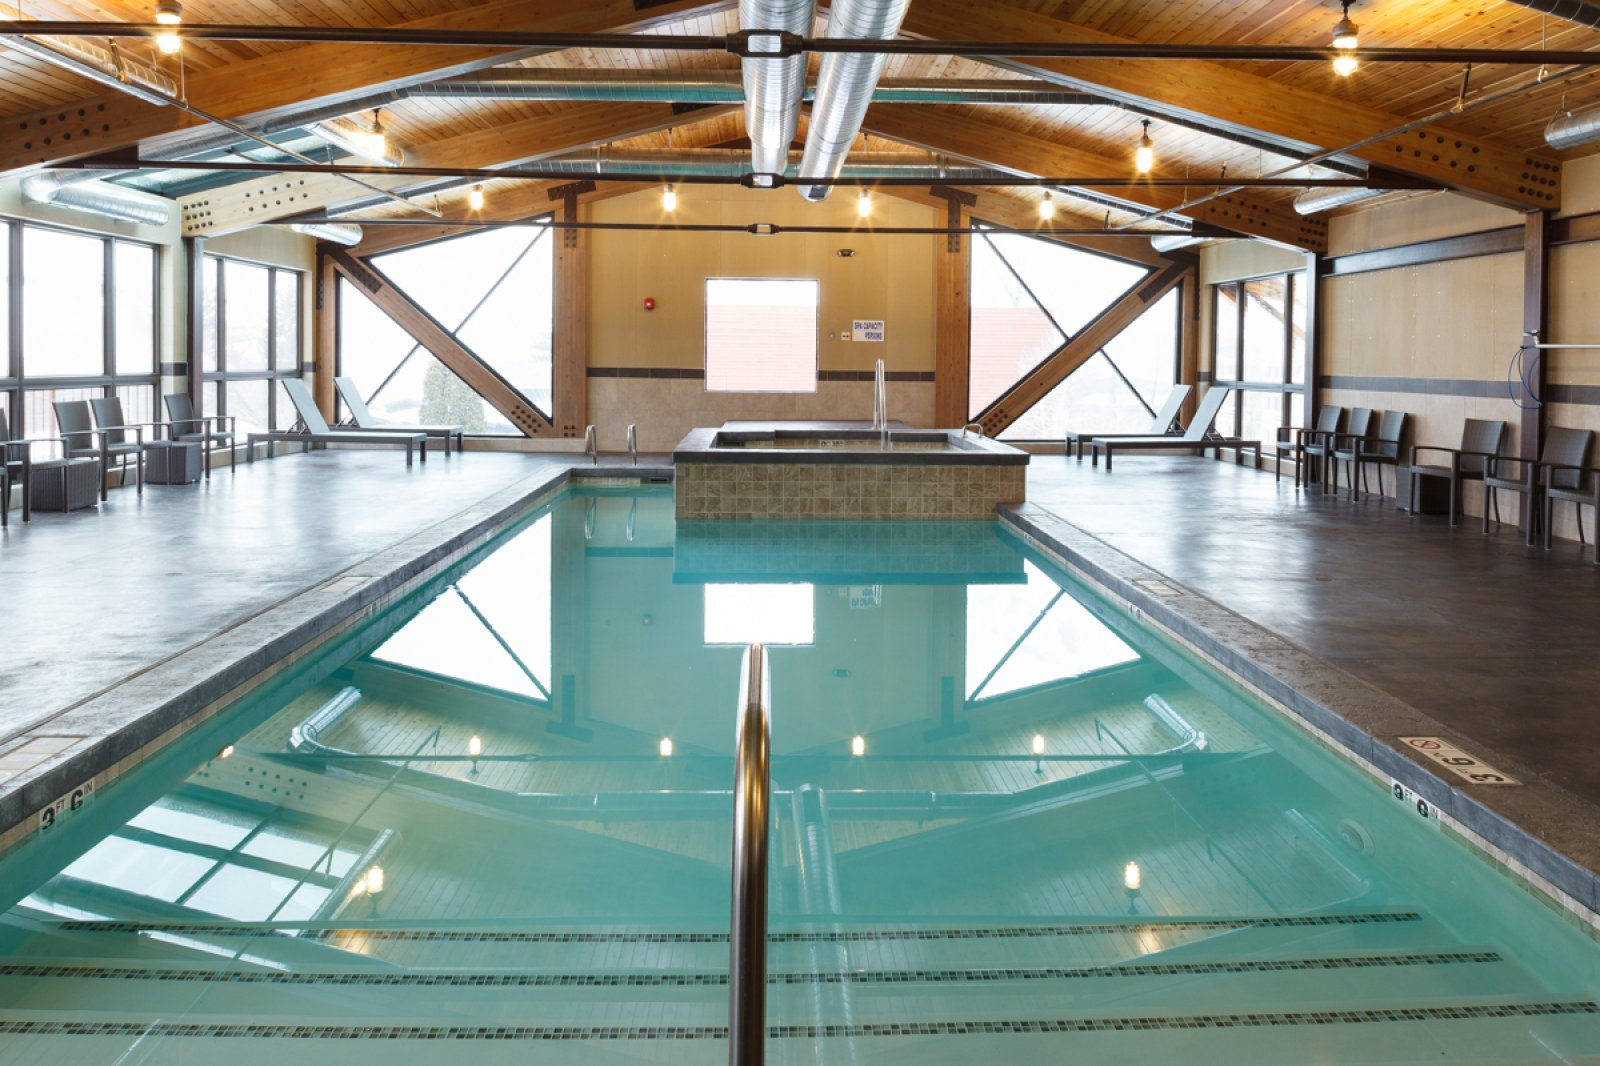 Official 49er inn suites town square inns - 24 hour fitness with swimming pool locations ...